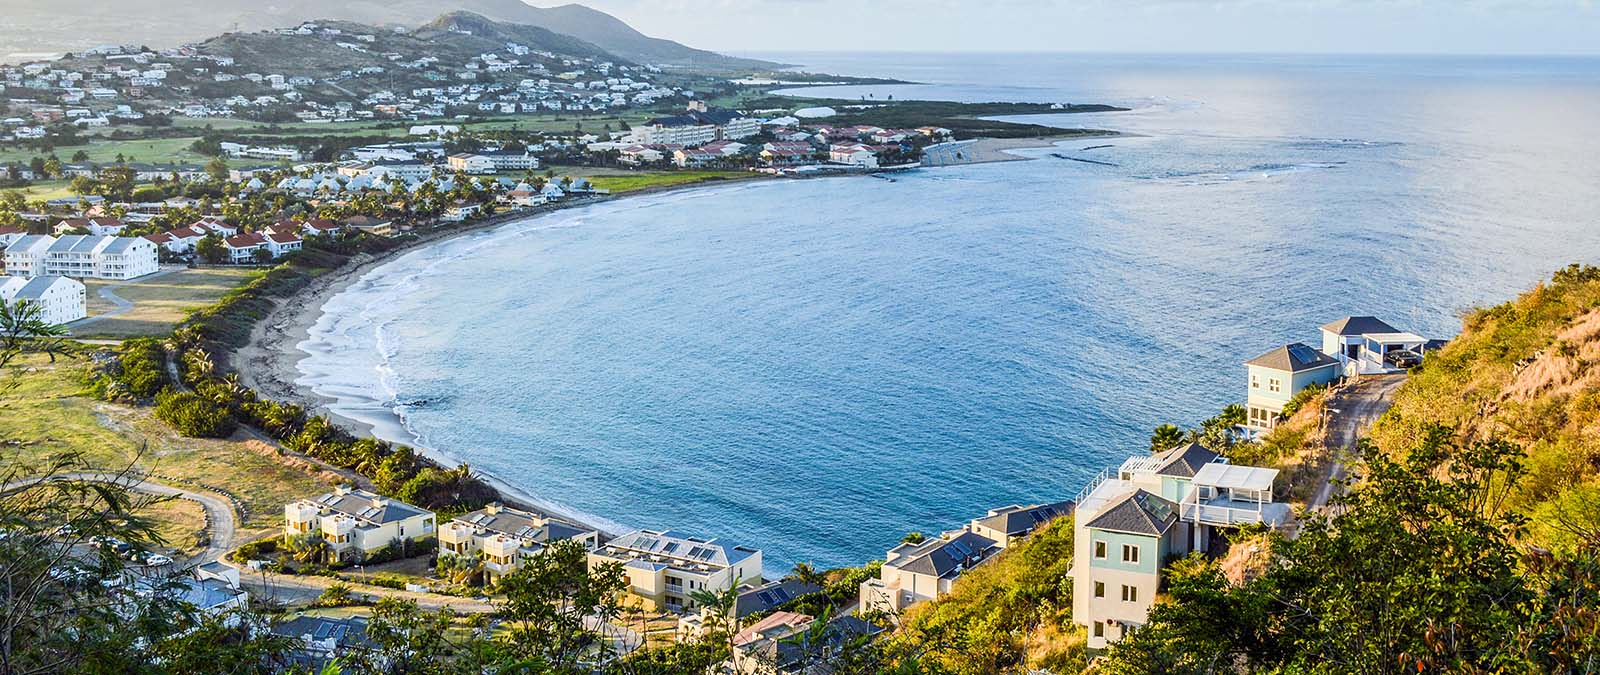 St. Kitts & Nevis gained its independence from the UK in 1983, although the Government is still part of the British Commonwealth and is represented by the British Parliamentary Democracy.